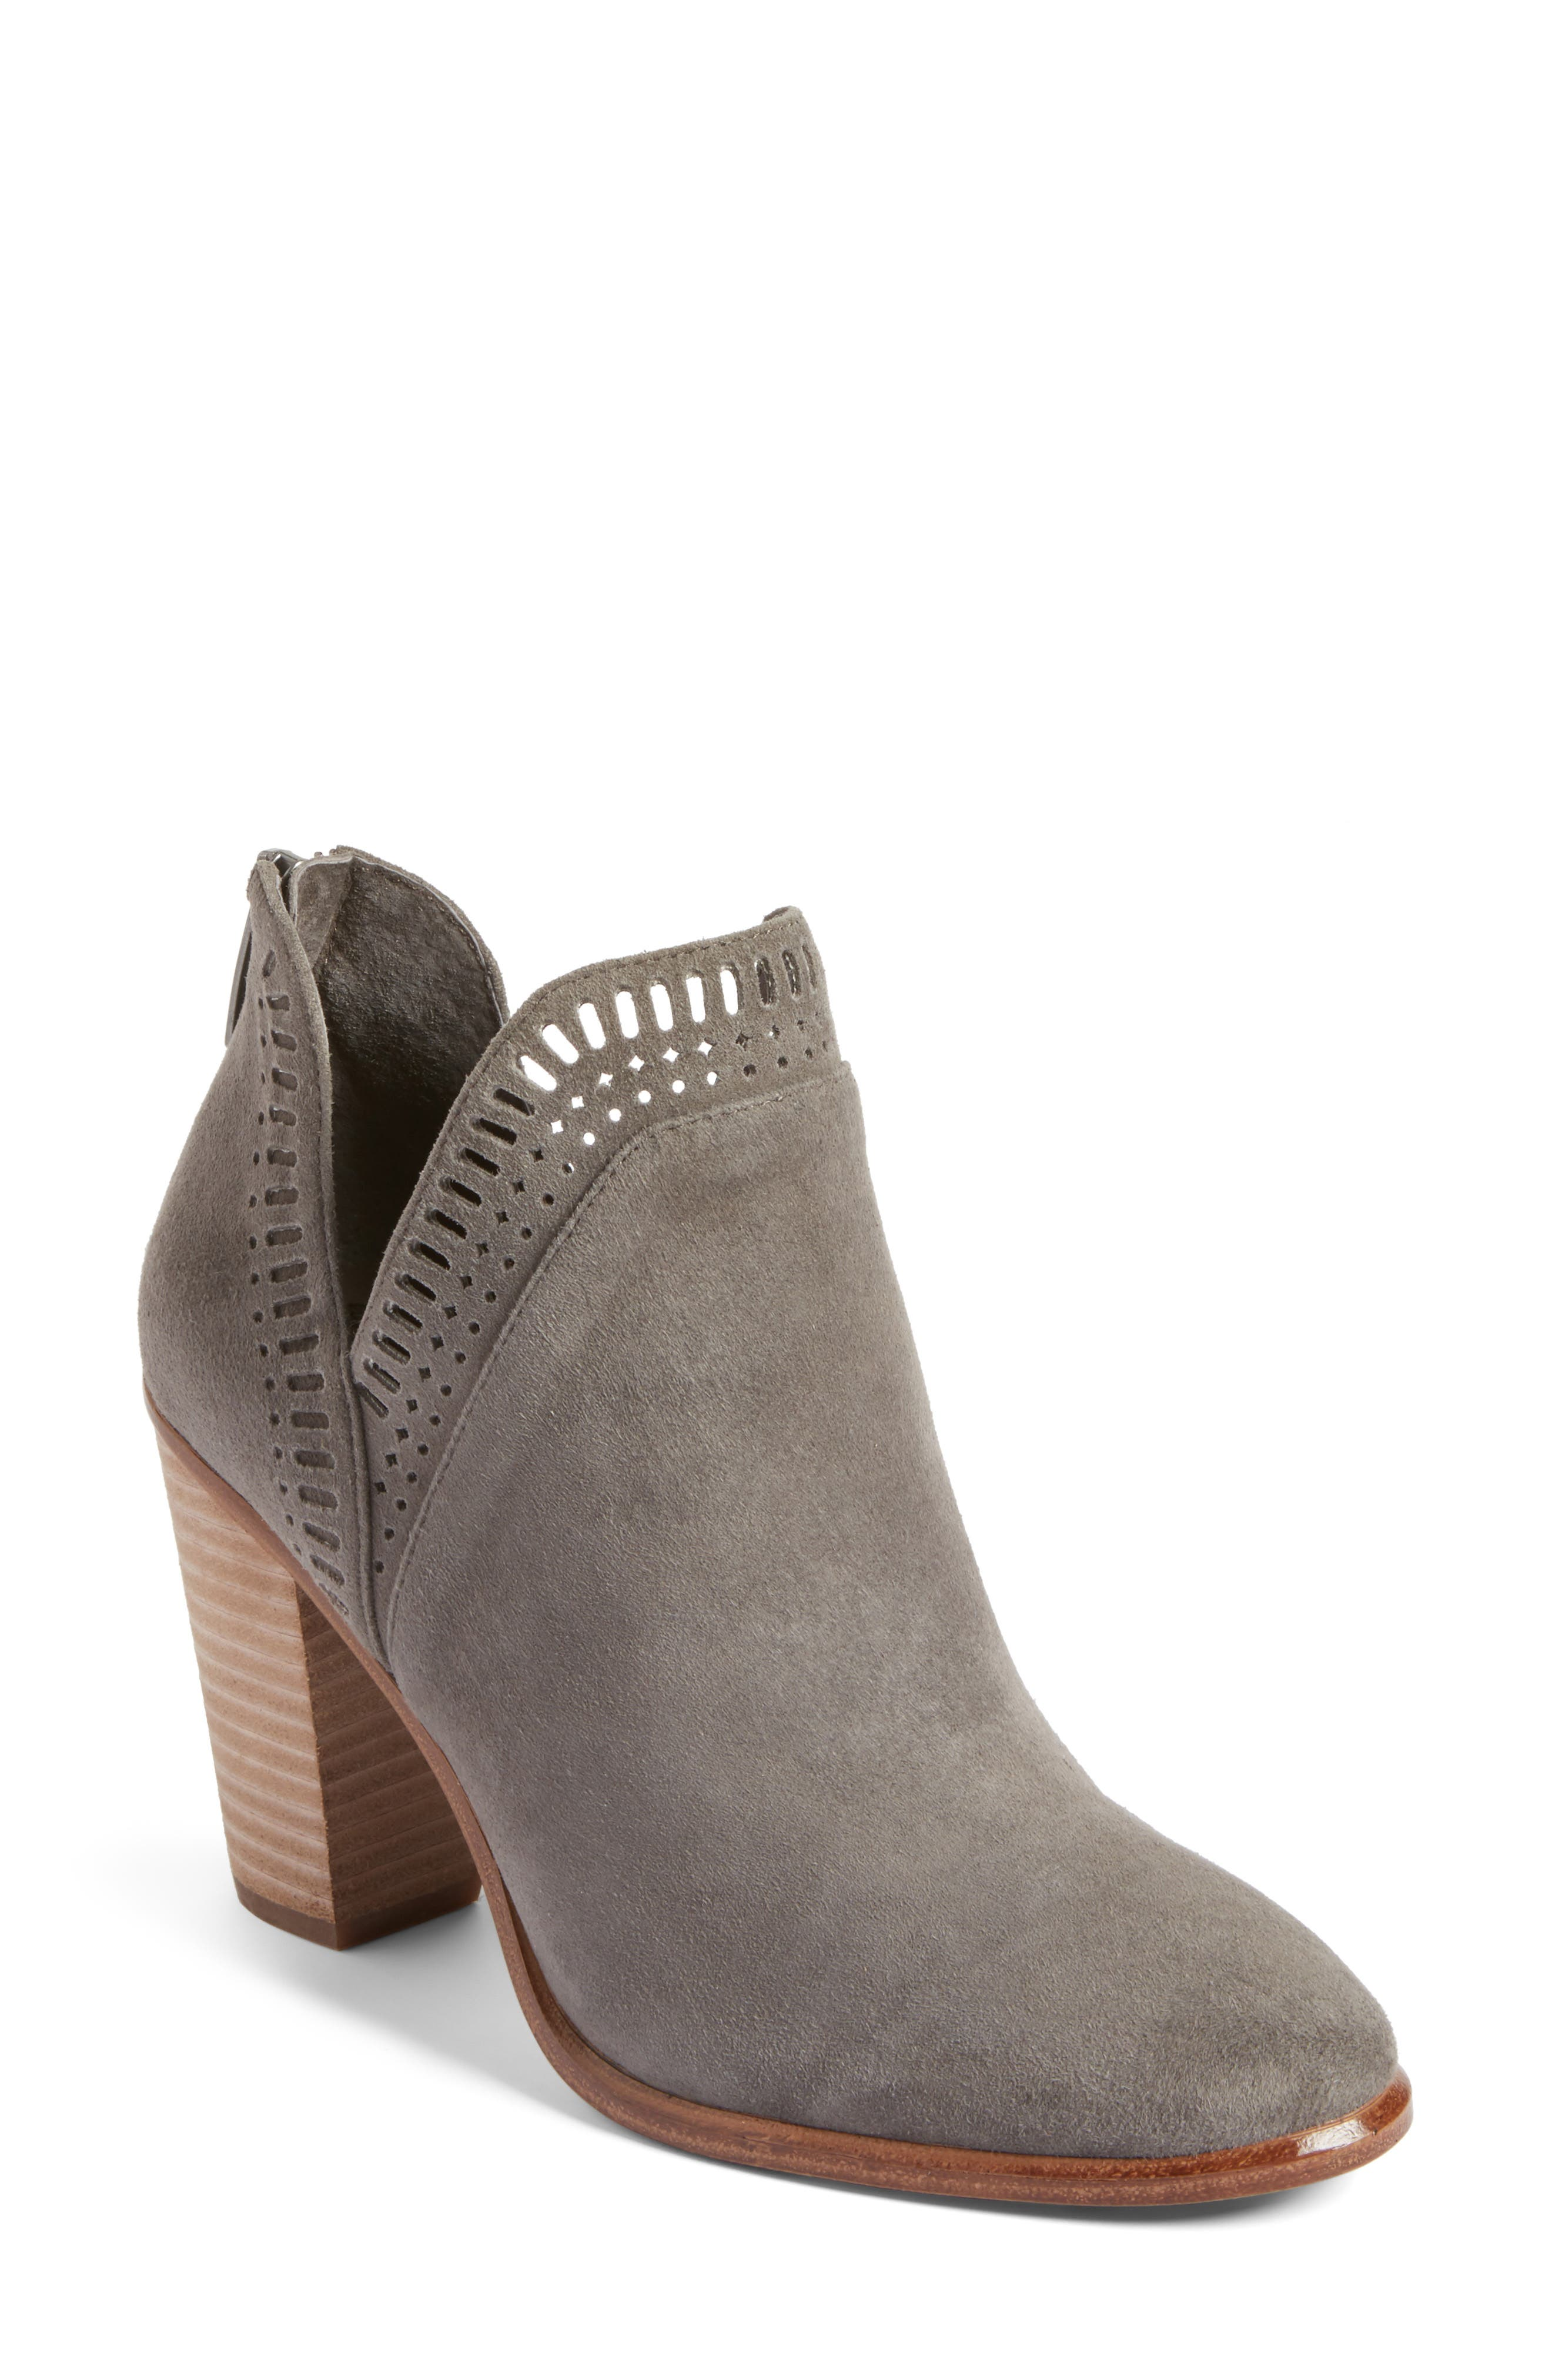 Alternate Image 1 Selected - Vince Camuto Fileana Split Shaft Bootie (Women)